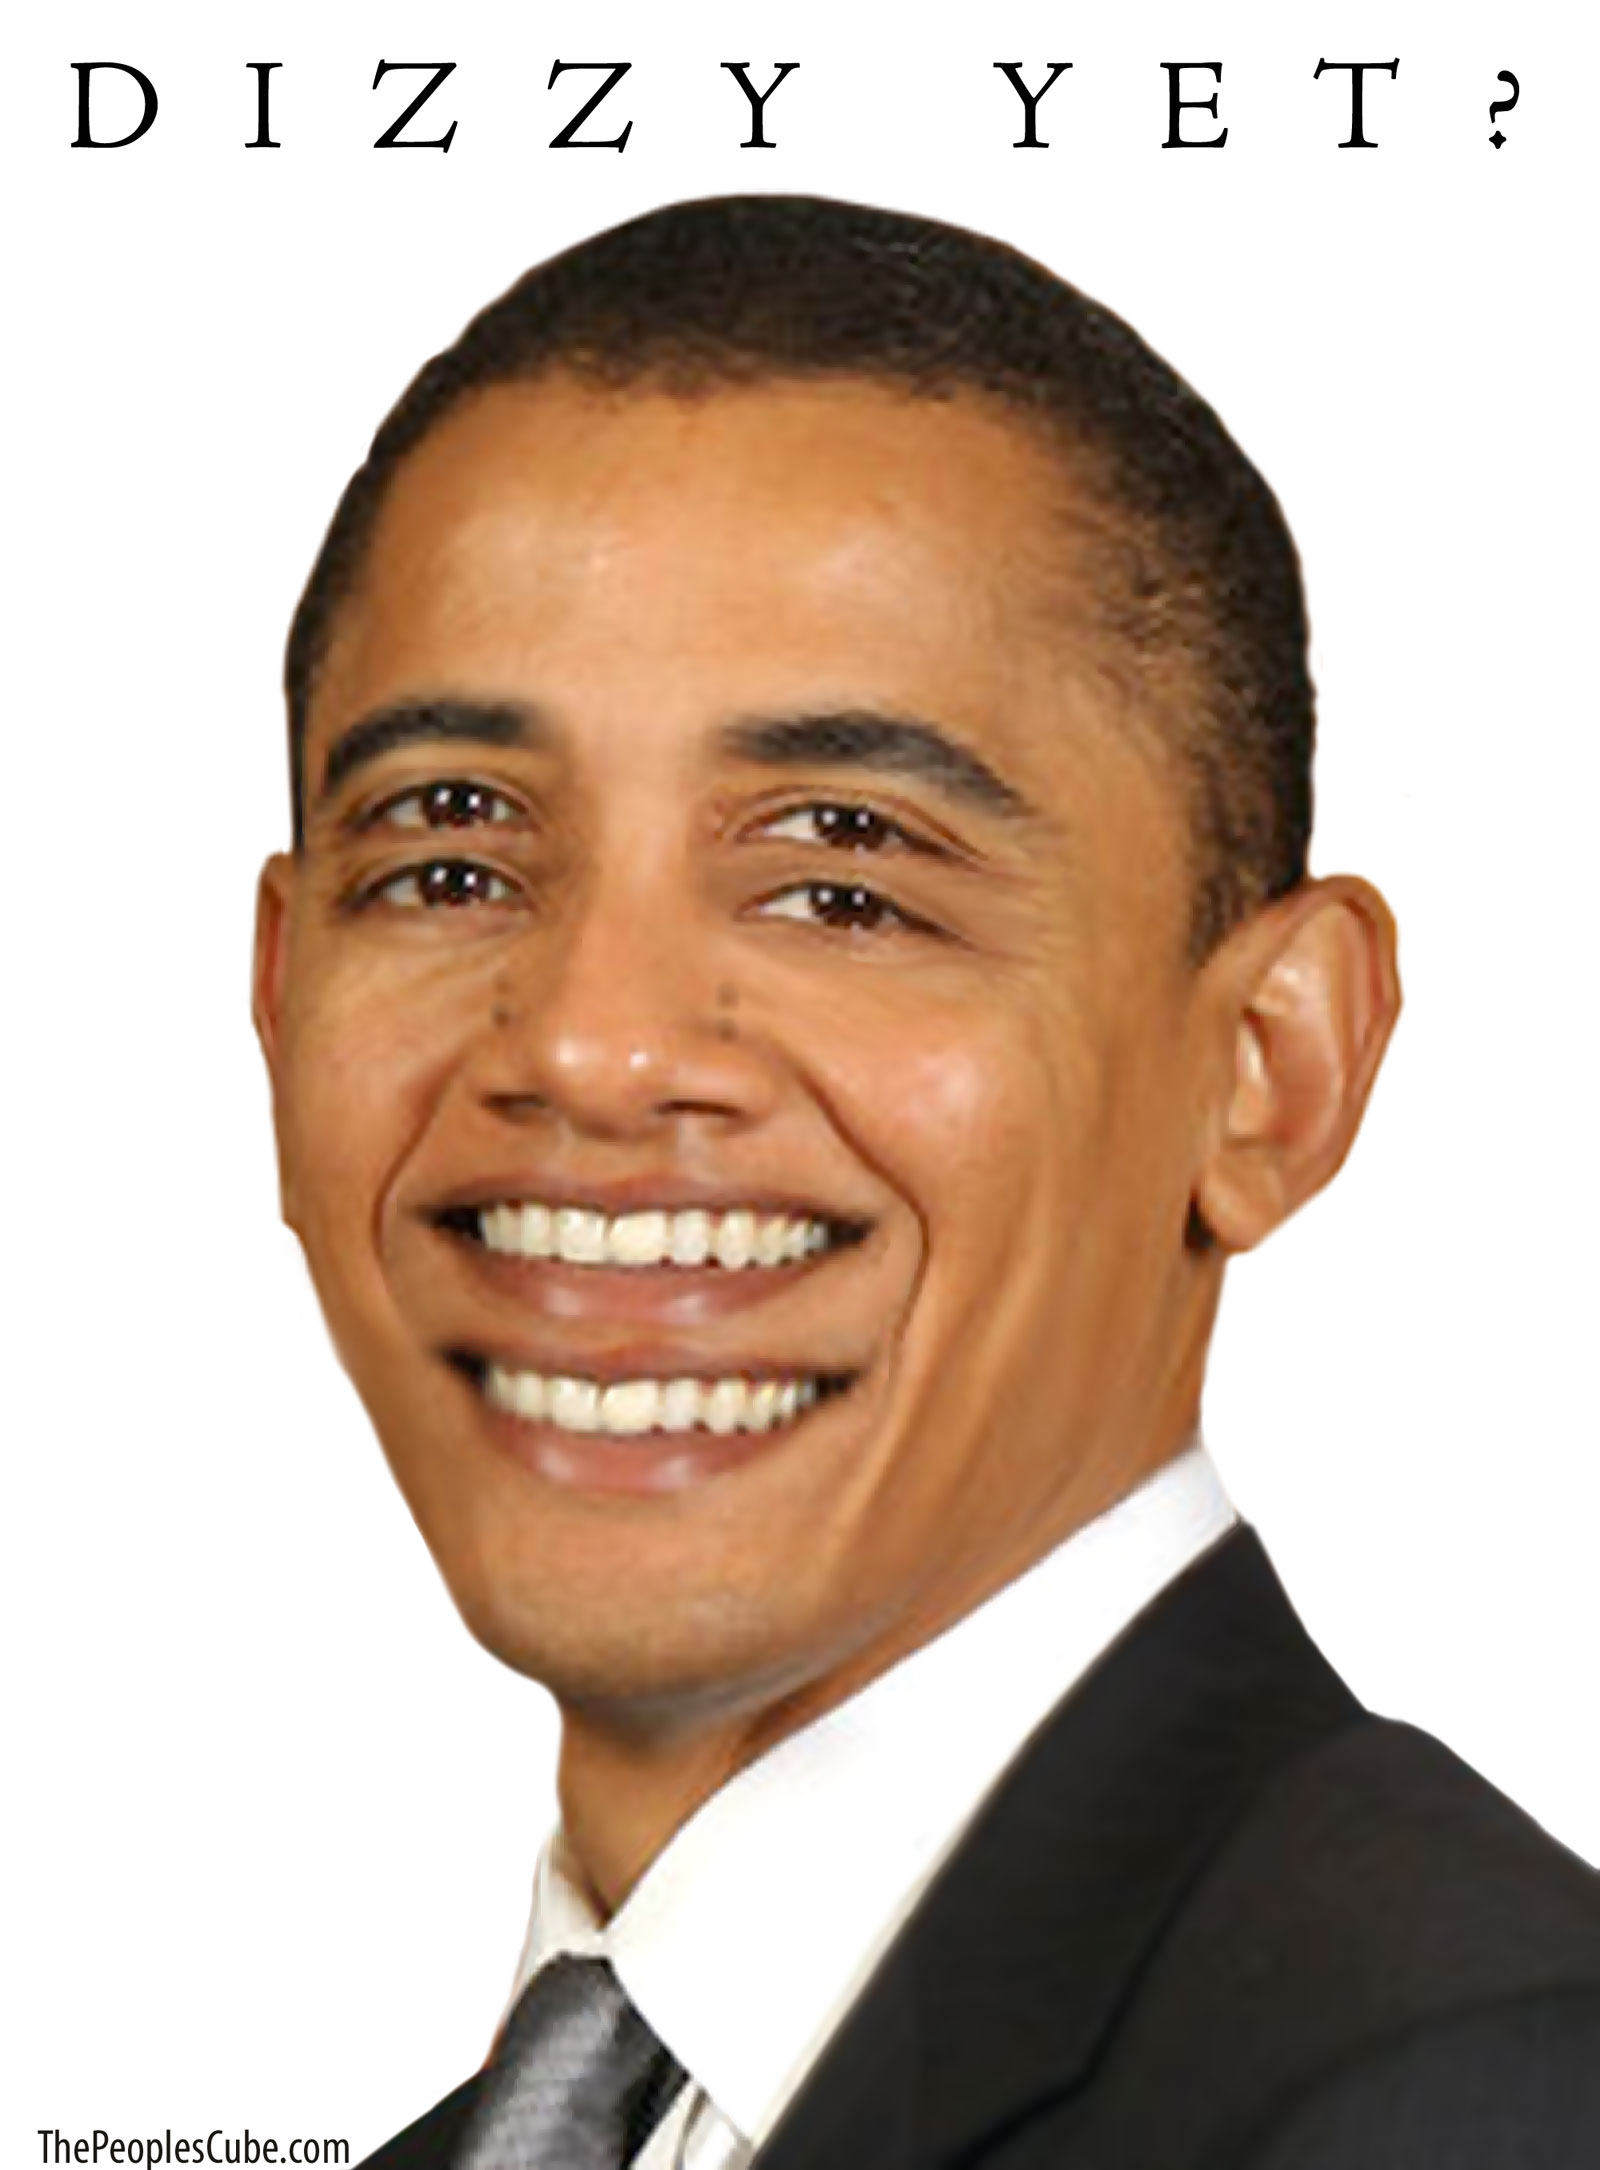 http://thepeoplescube.com/images/TeaParties/Obama_Dizzy_Double_Large.jpg